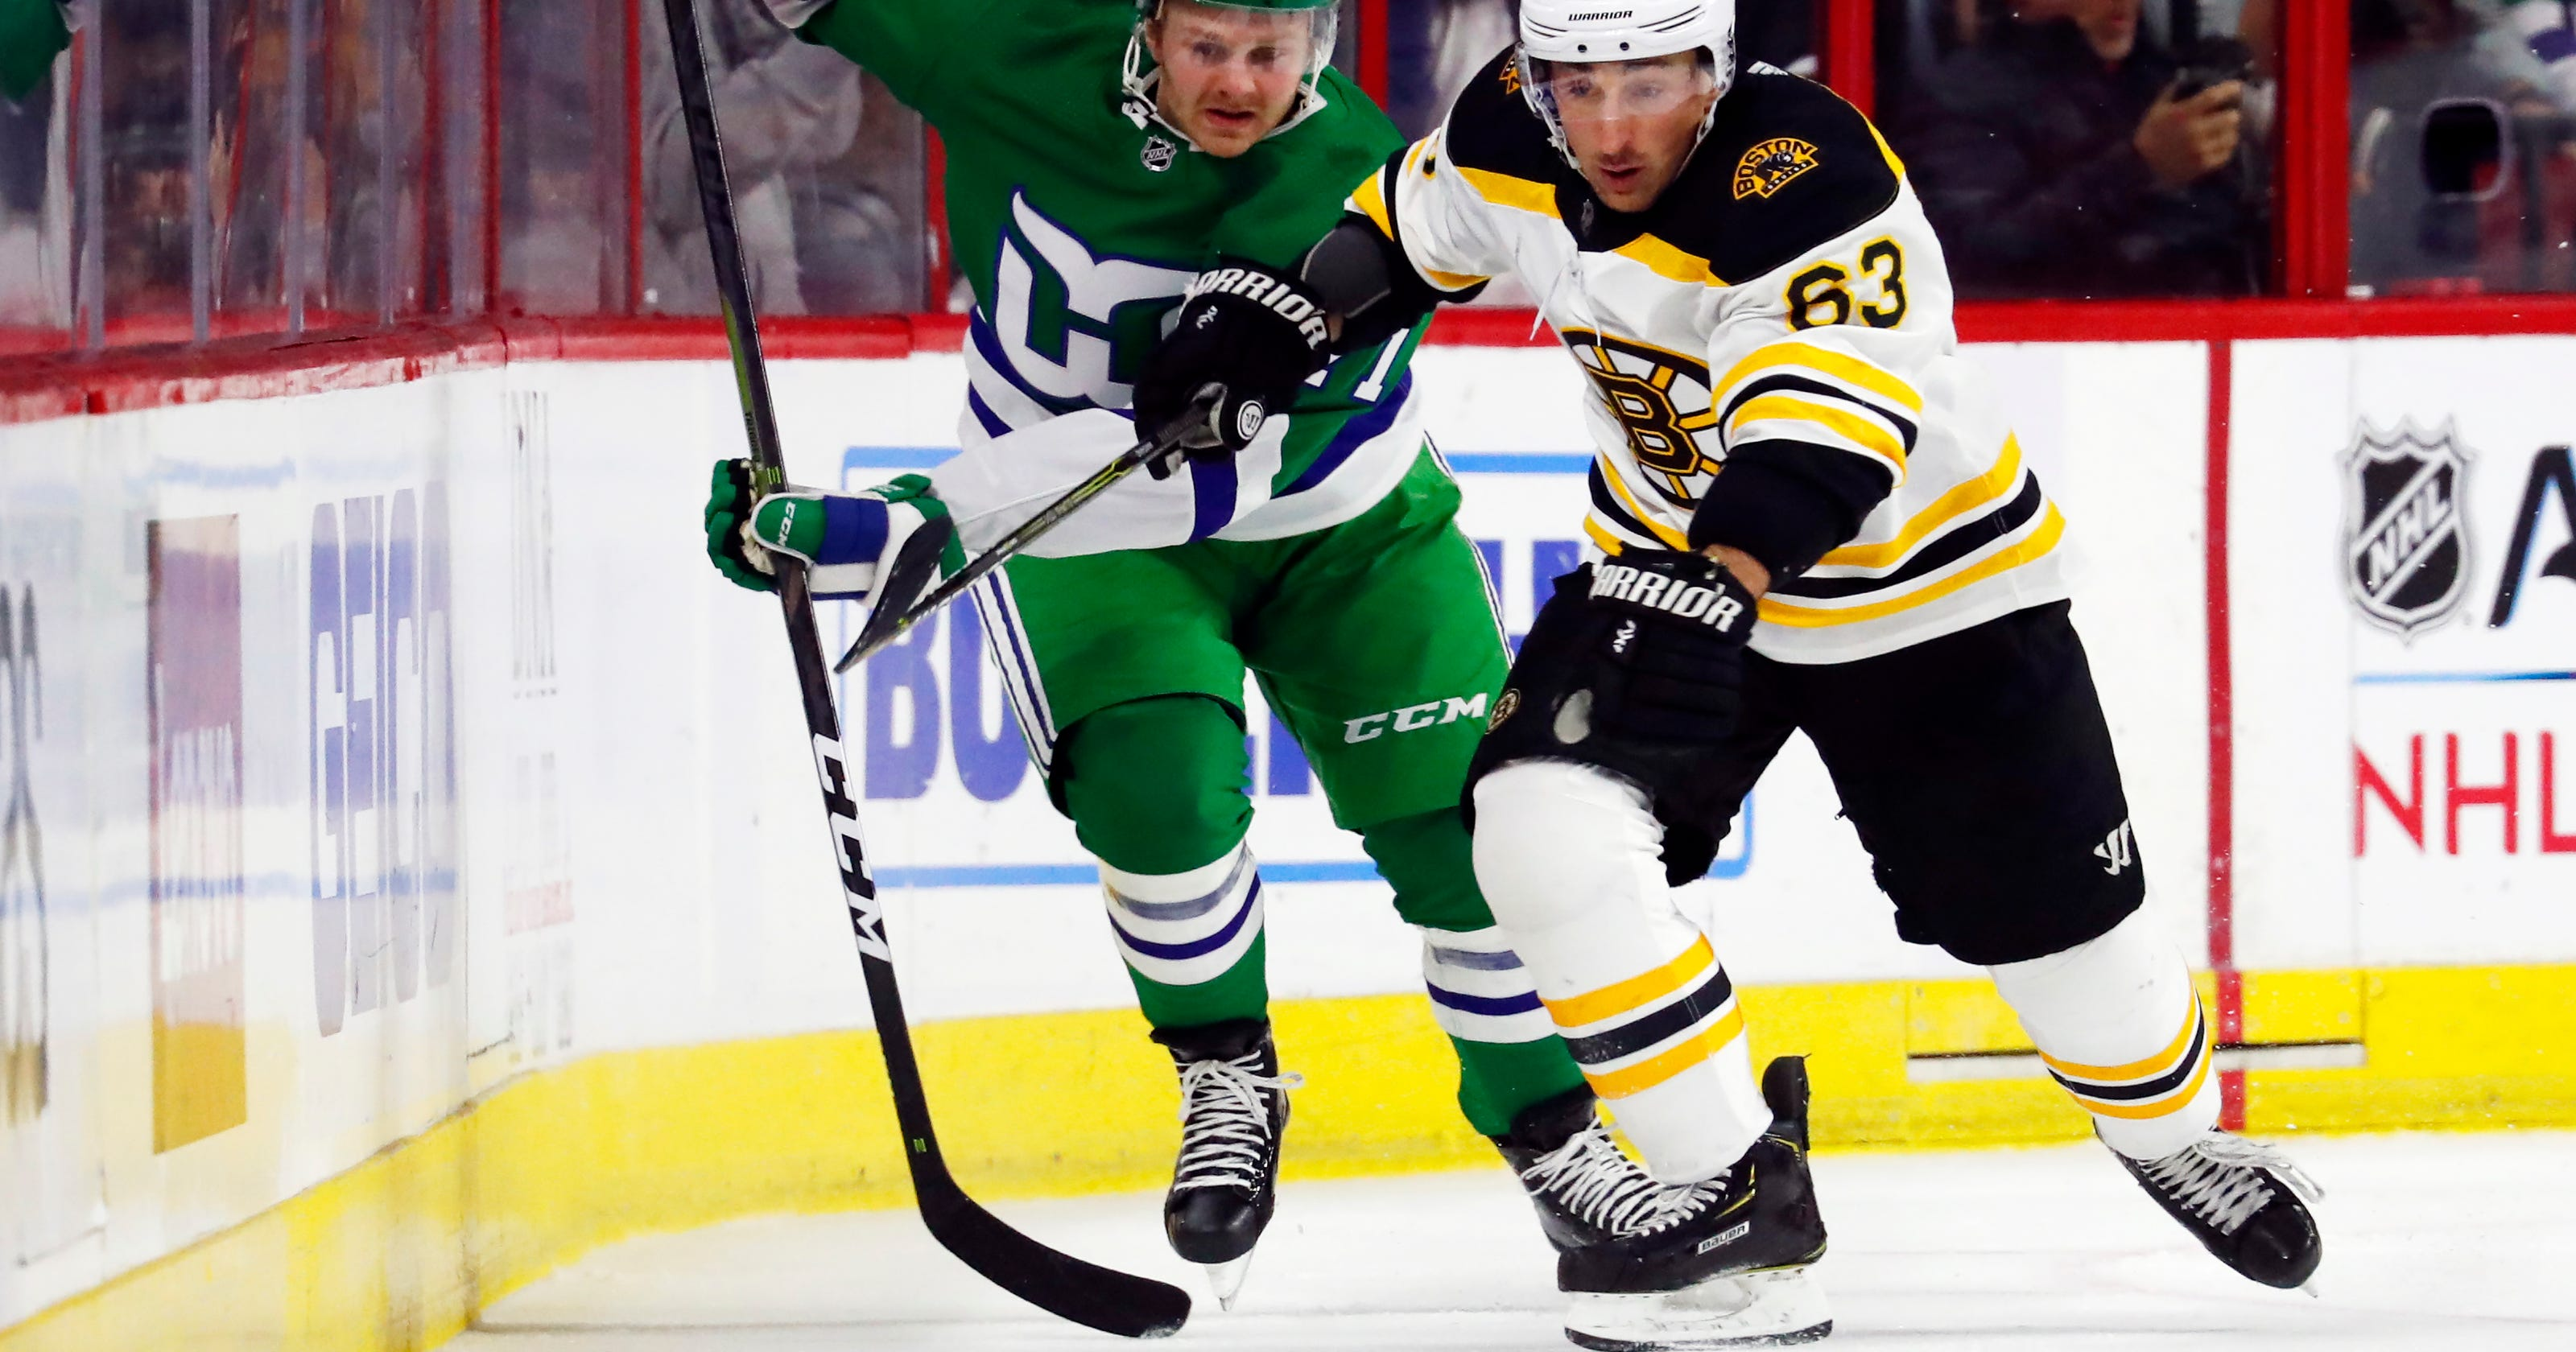 Aho leads Carolina past Bruins 5-3 on Whalers Night 9a87f8fce